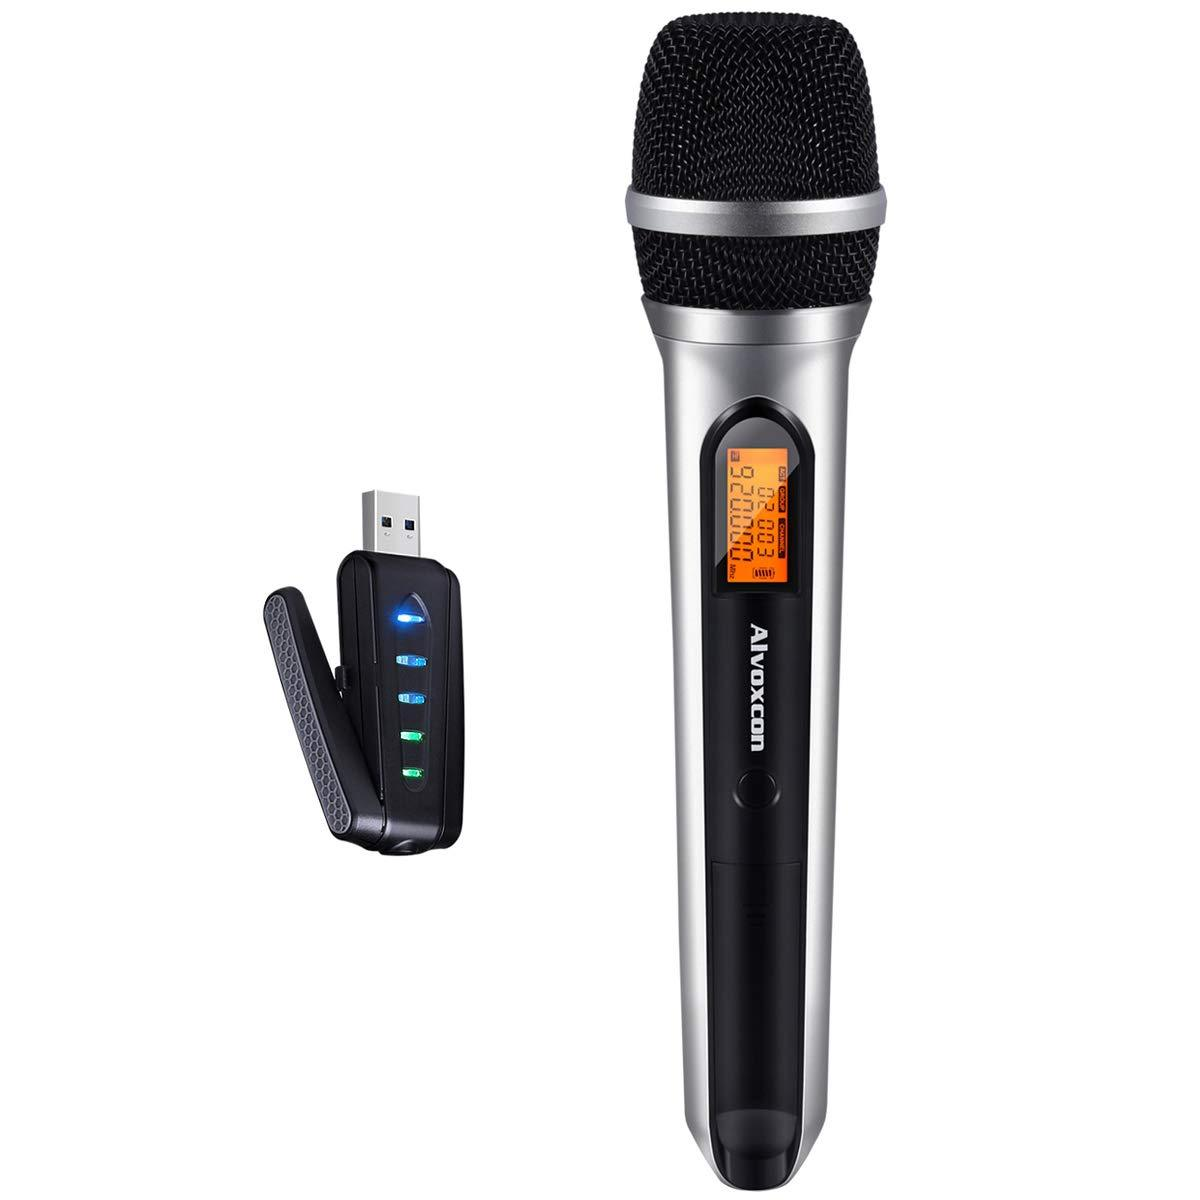 USB Wireless Microphone, Alvoxcon UHF Unidirectional mic